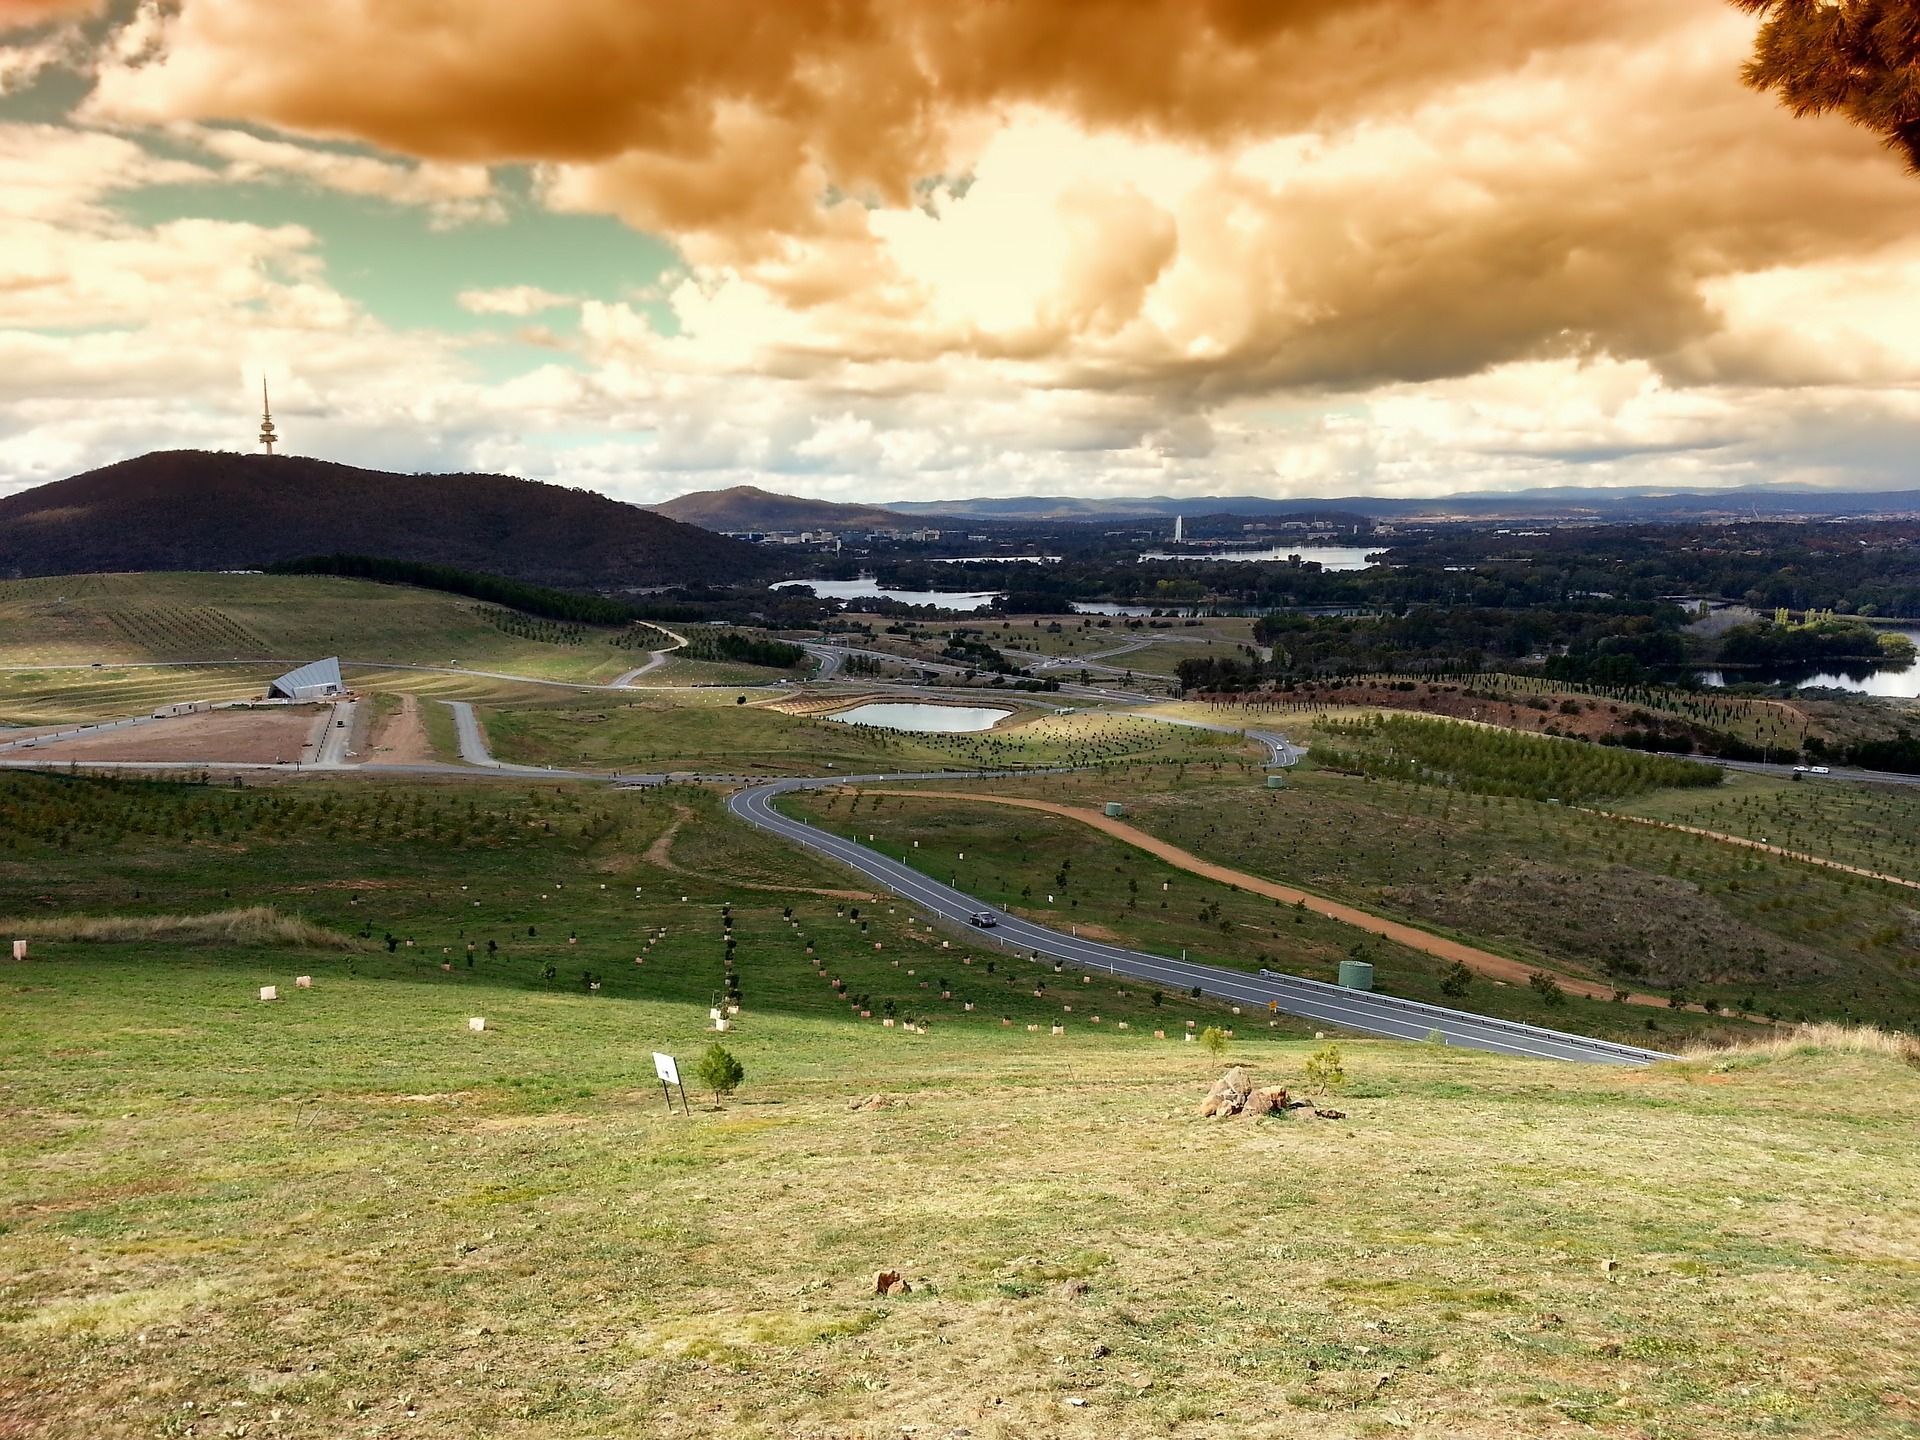 canberra-112101_1920